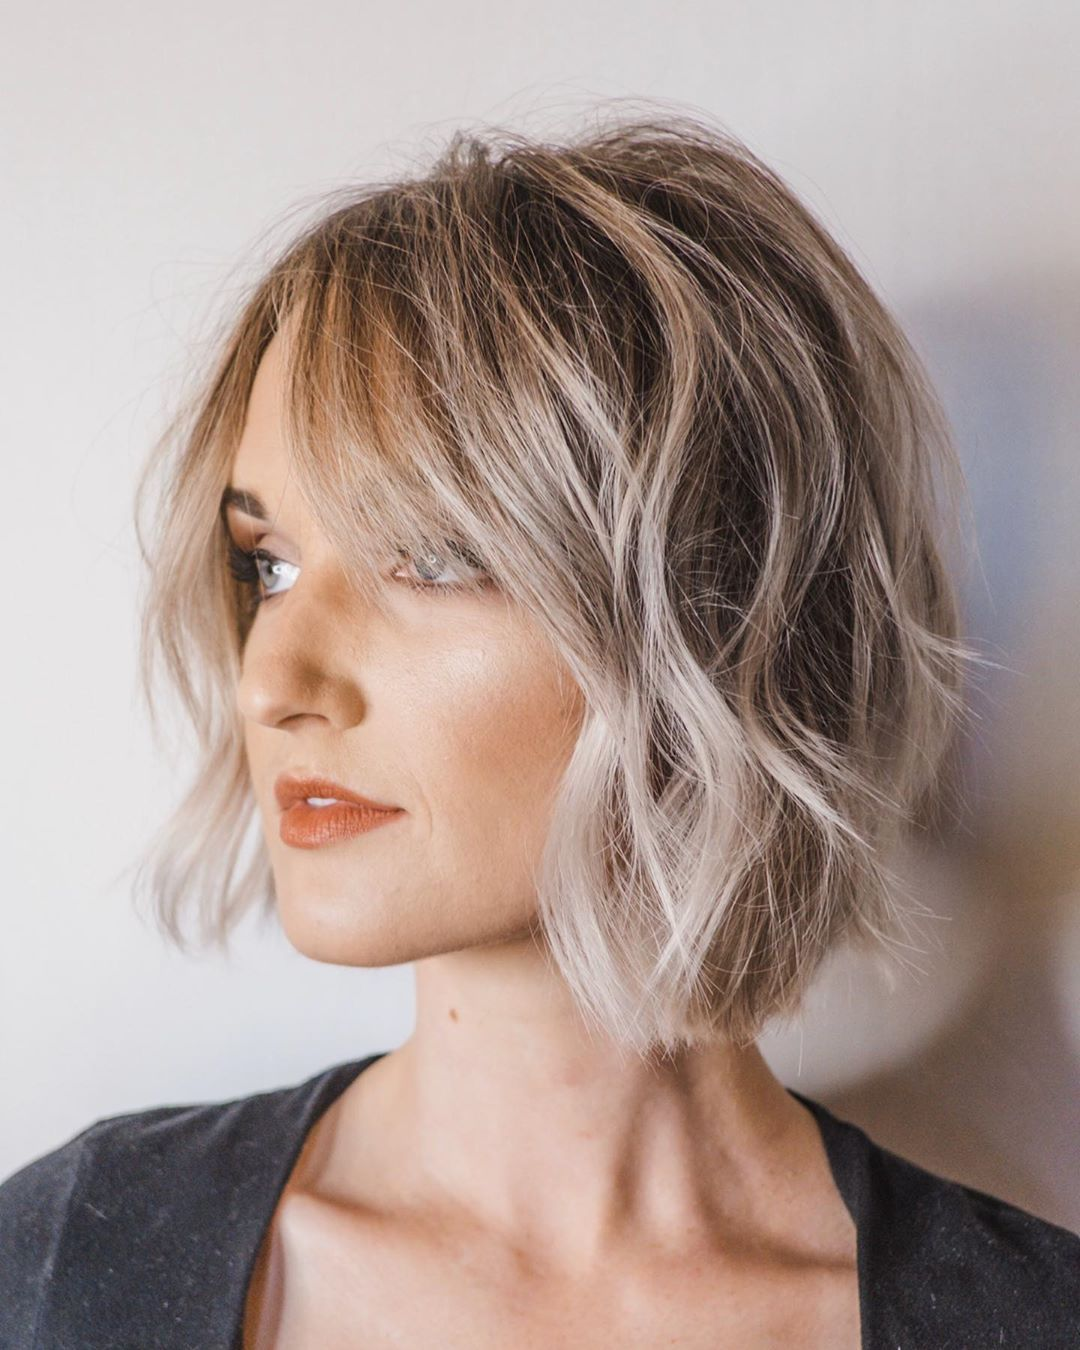 10 Manageable Trendy Bob Haircuts For Women Short Hairstyle 2020 2021 In 2020 Short Wavy Hair Haircut For Thick Hair Thick Hair Styles